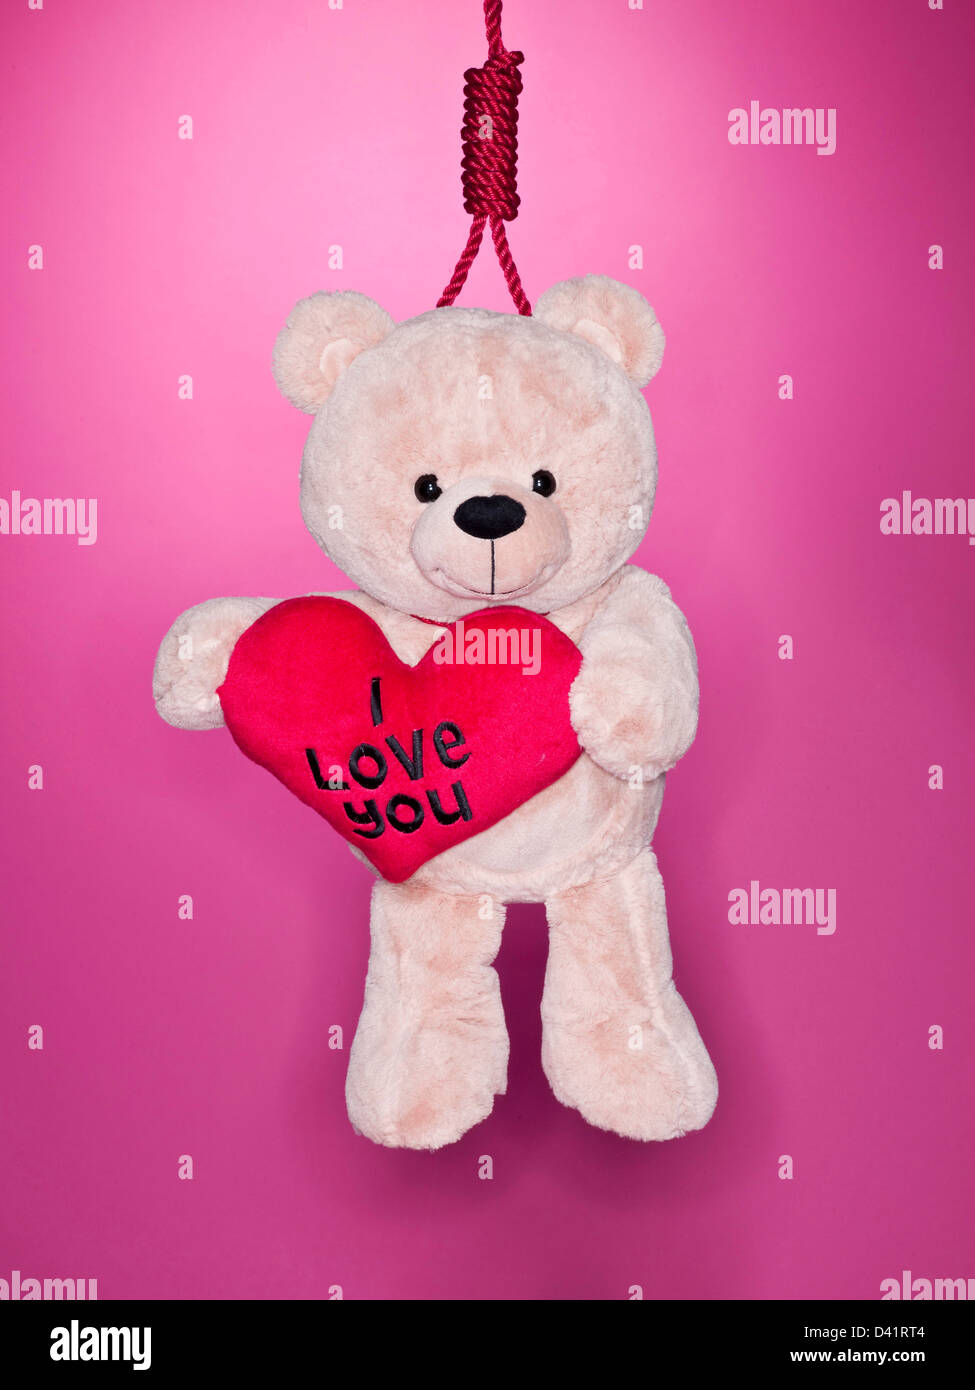 Teddy bear holding love heart with noose round neck - Stock Image